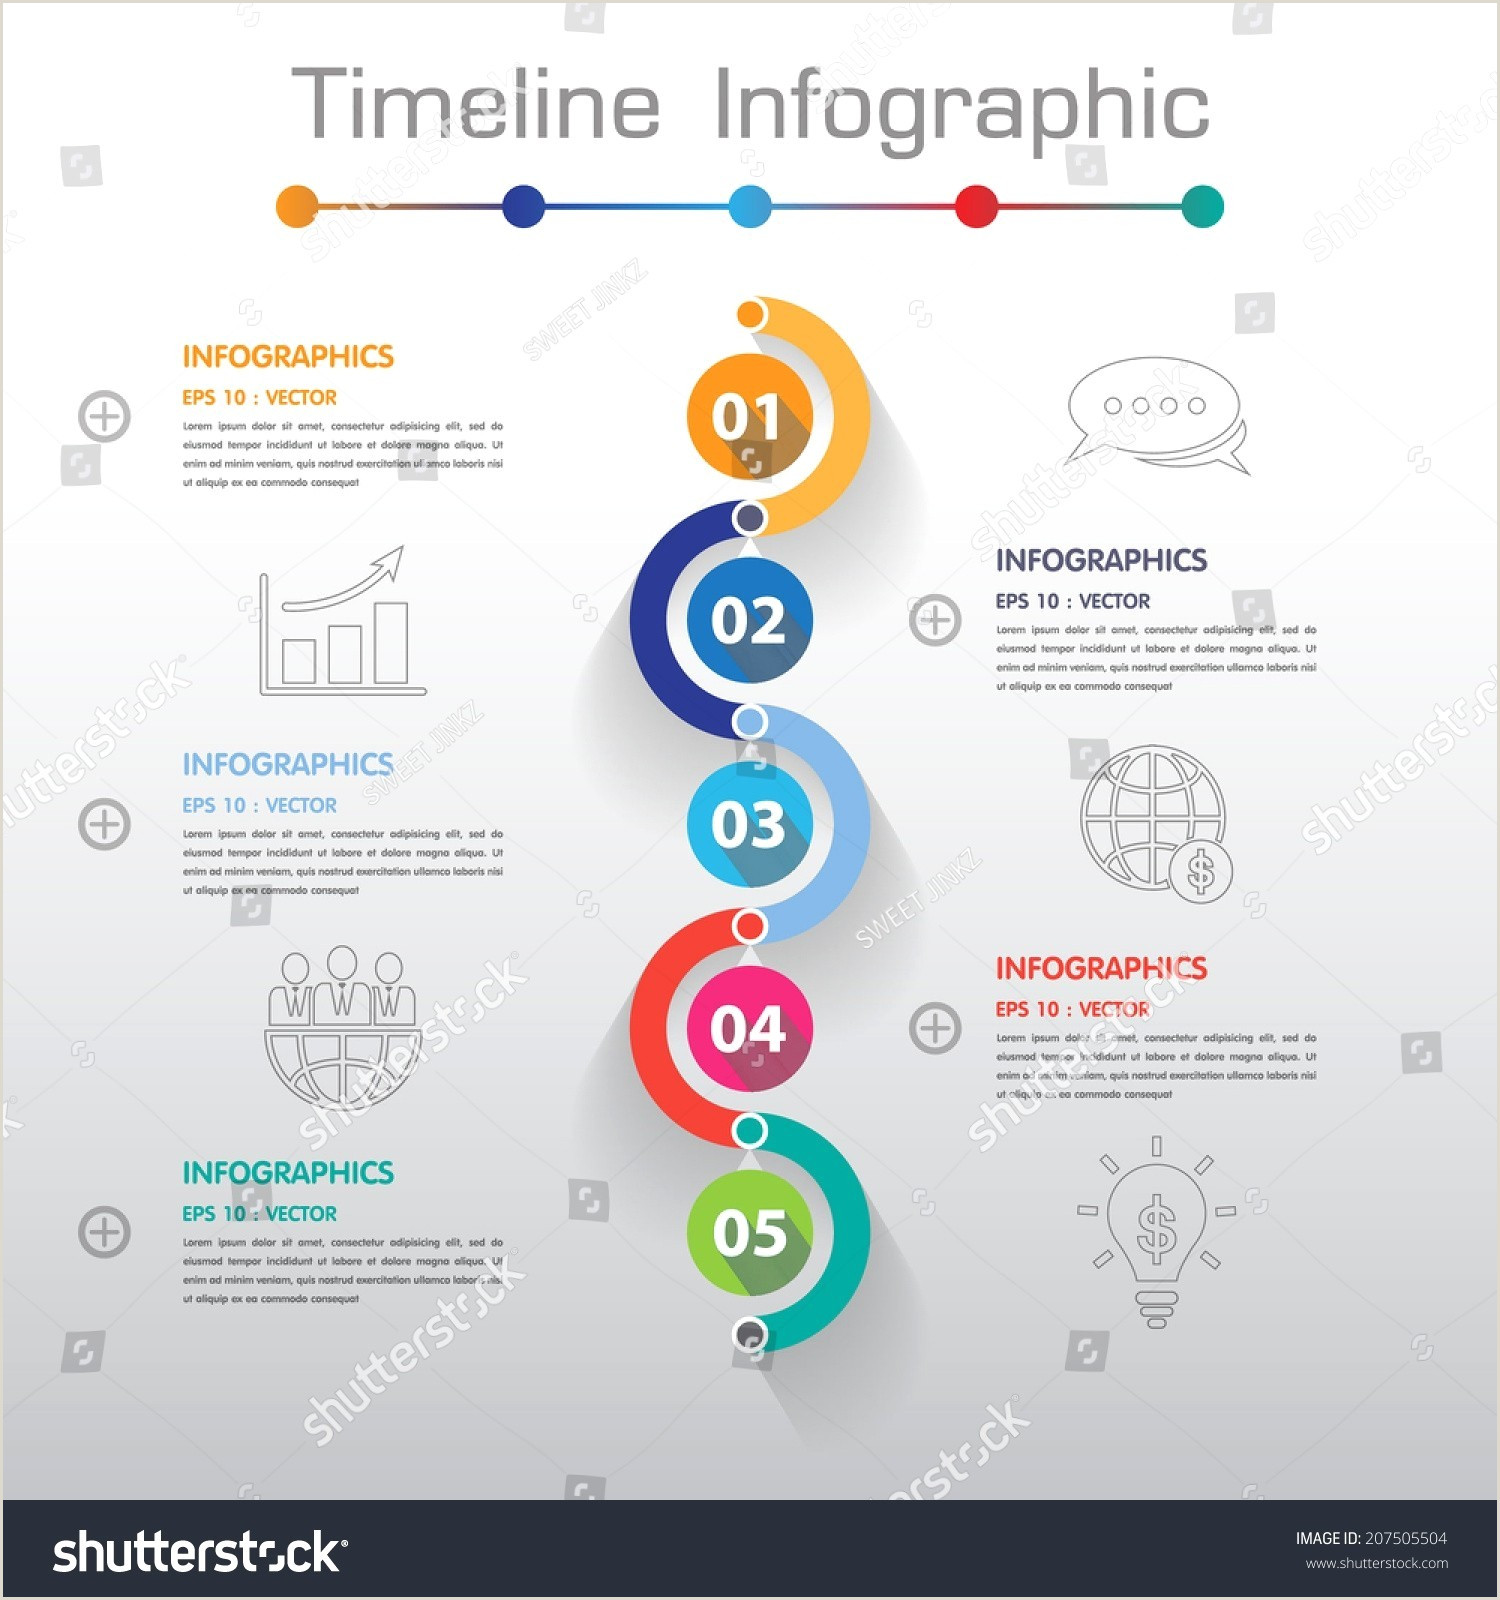 Disney Powerpoint Template why Choose Us Infographic Collection